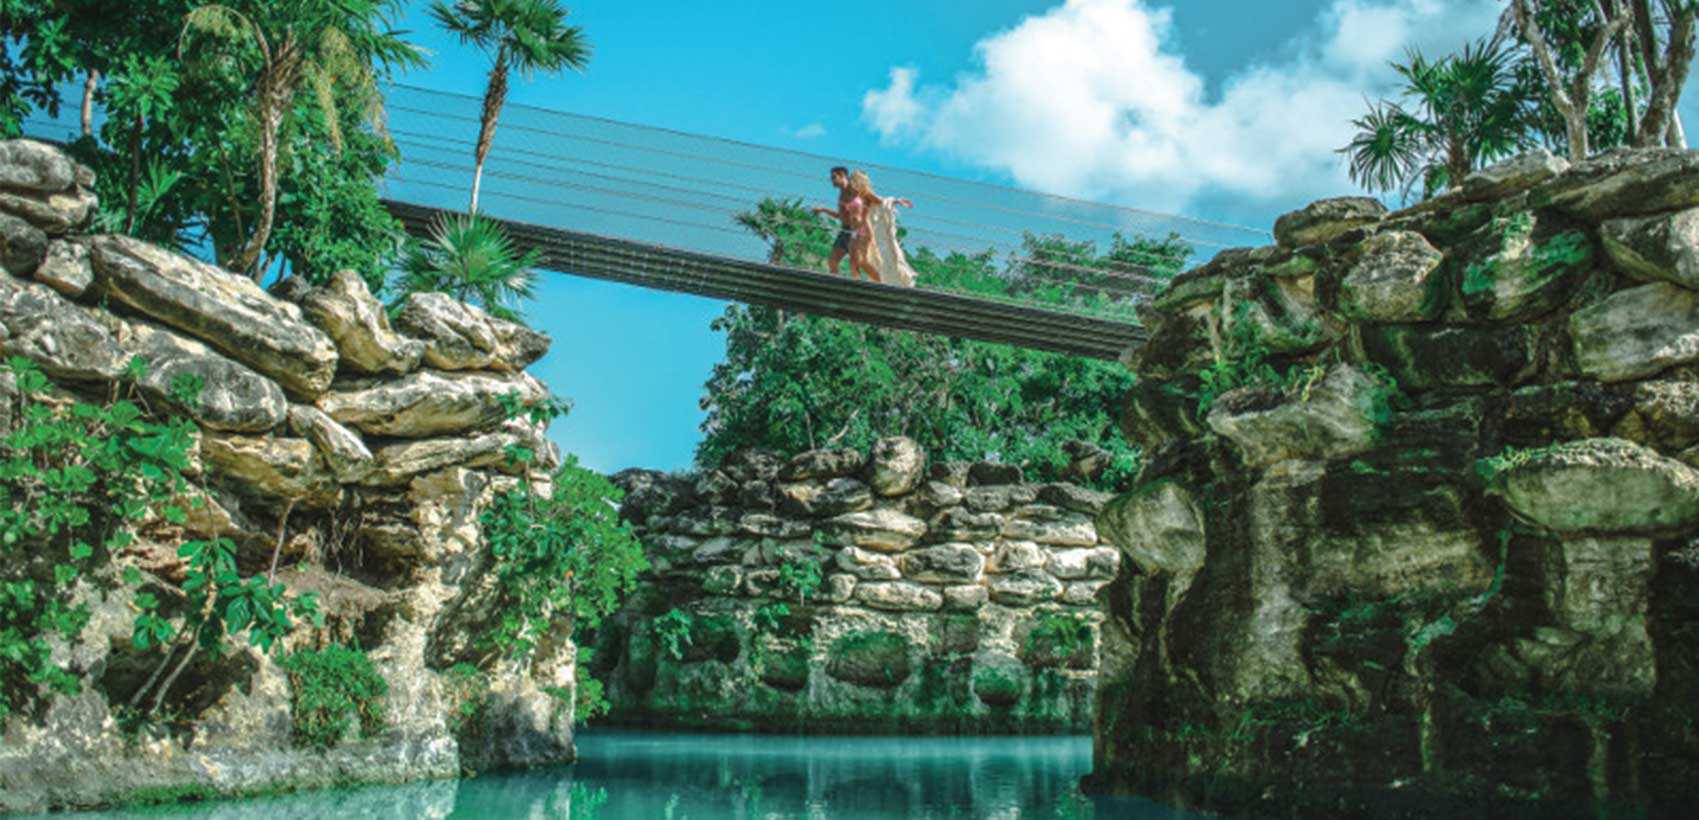 Experience Hotel Xcaret Mexico with Transat Family Collection 2